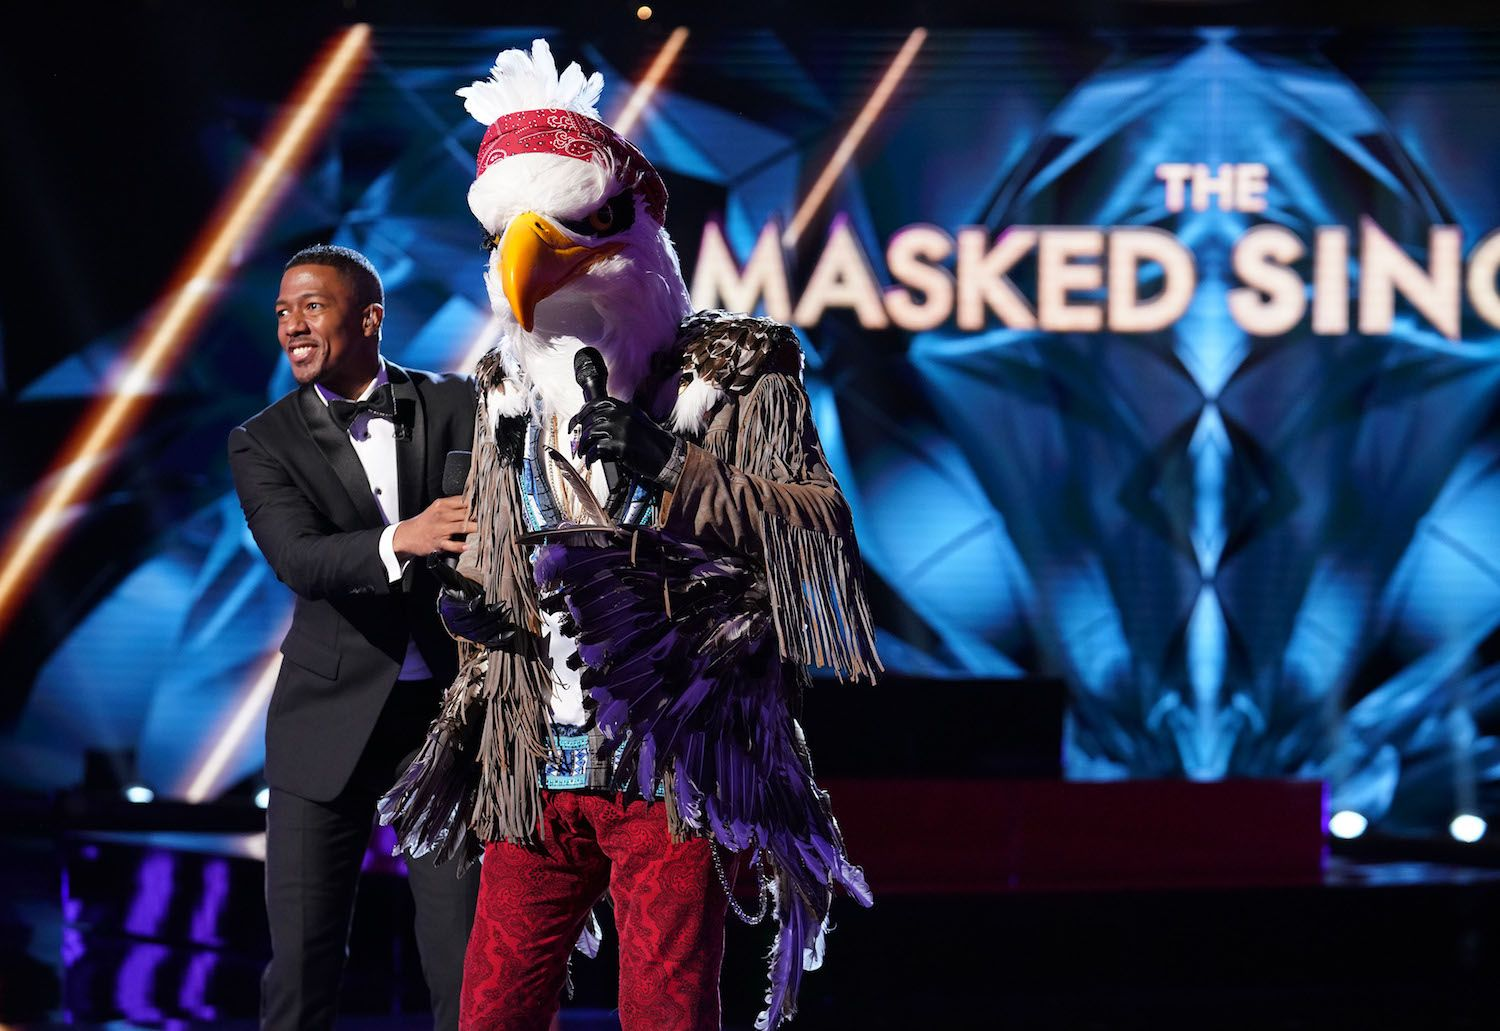 Get All 'The Masked Singer' Spoilers You Could Ever Want